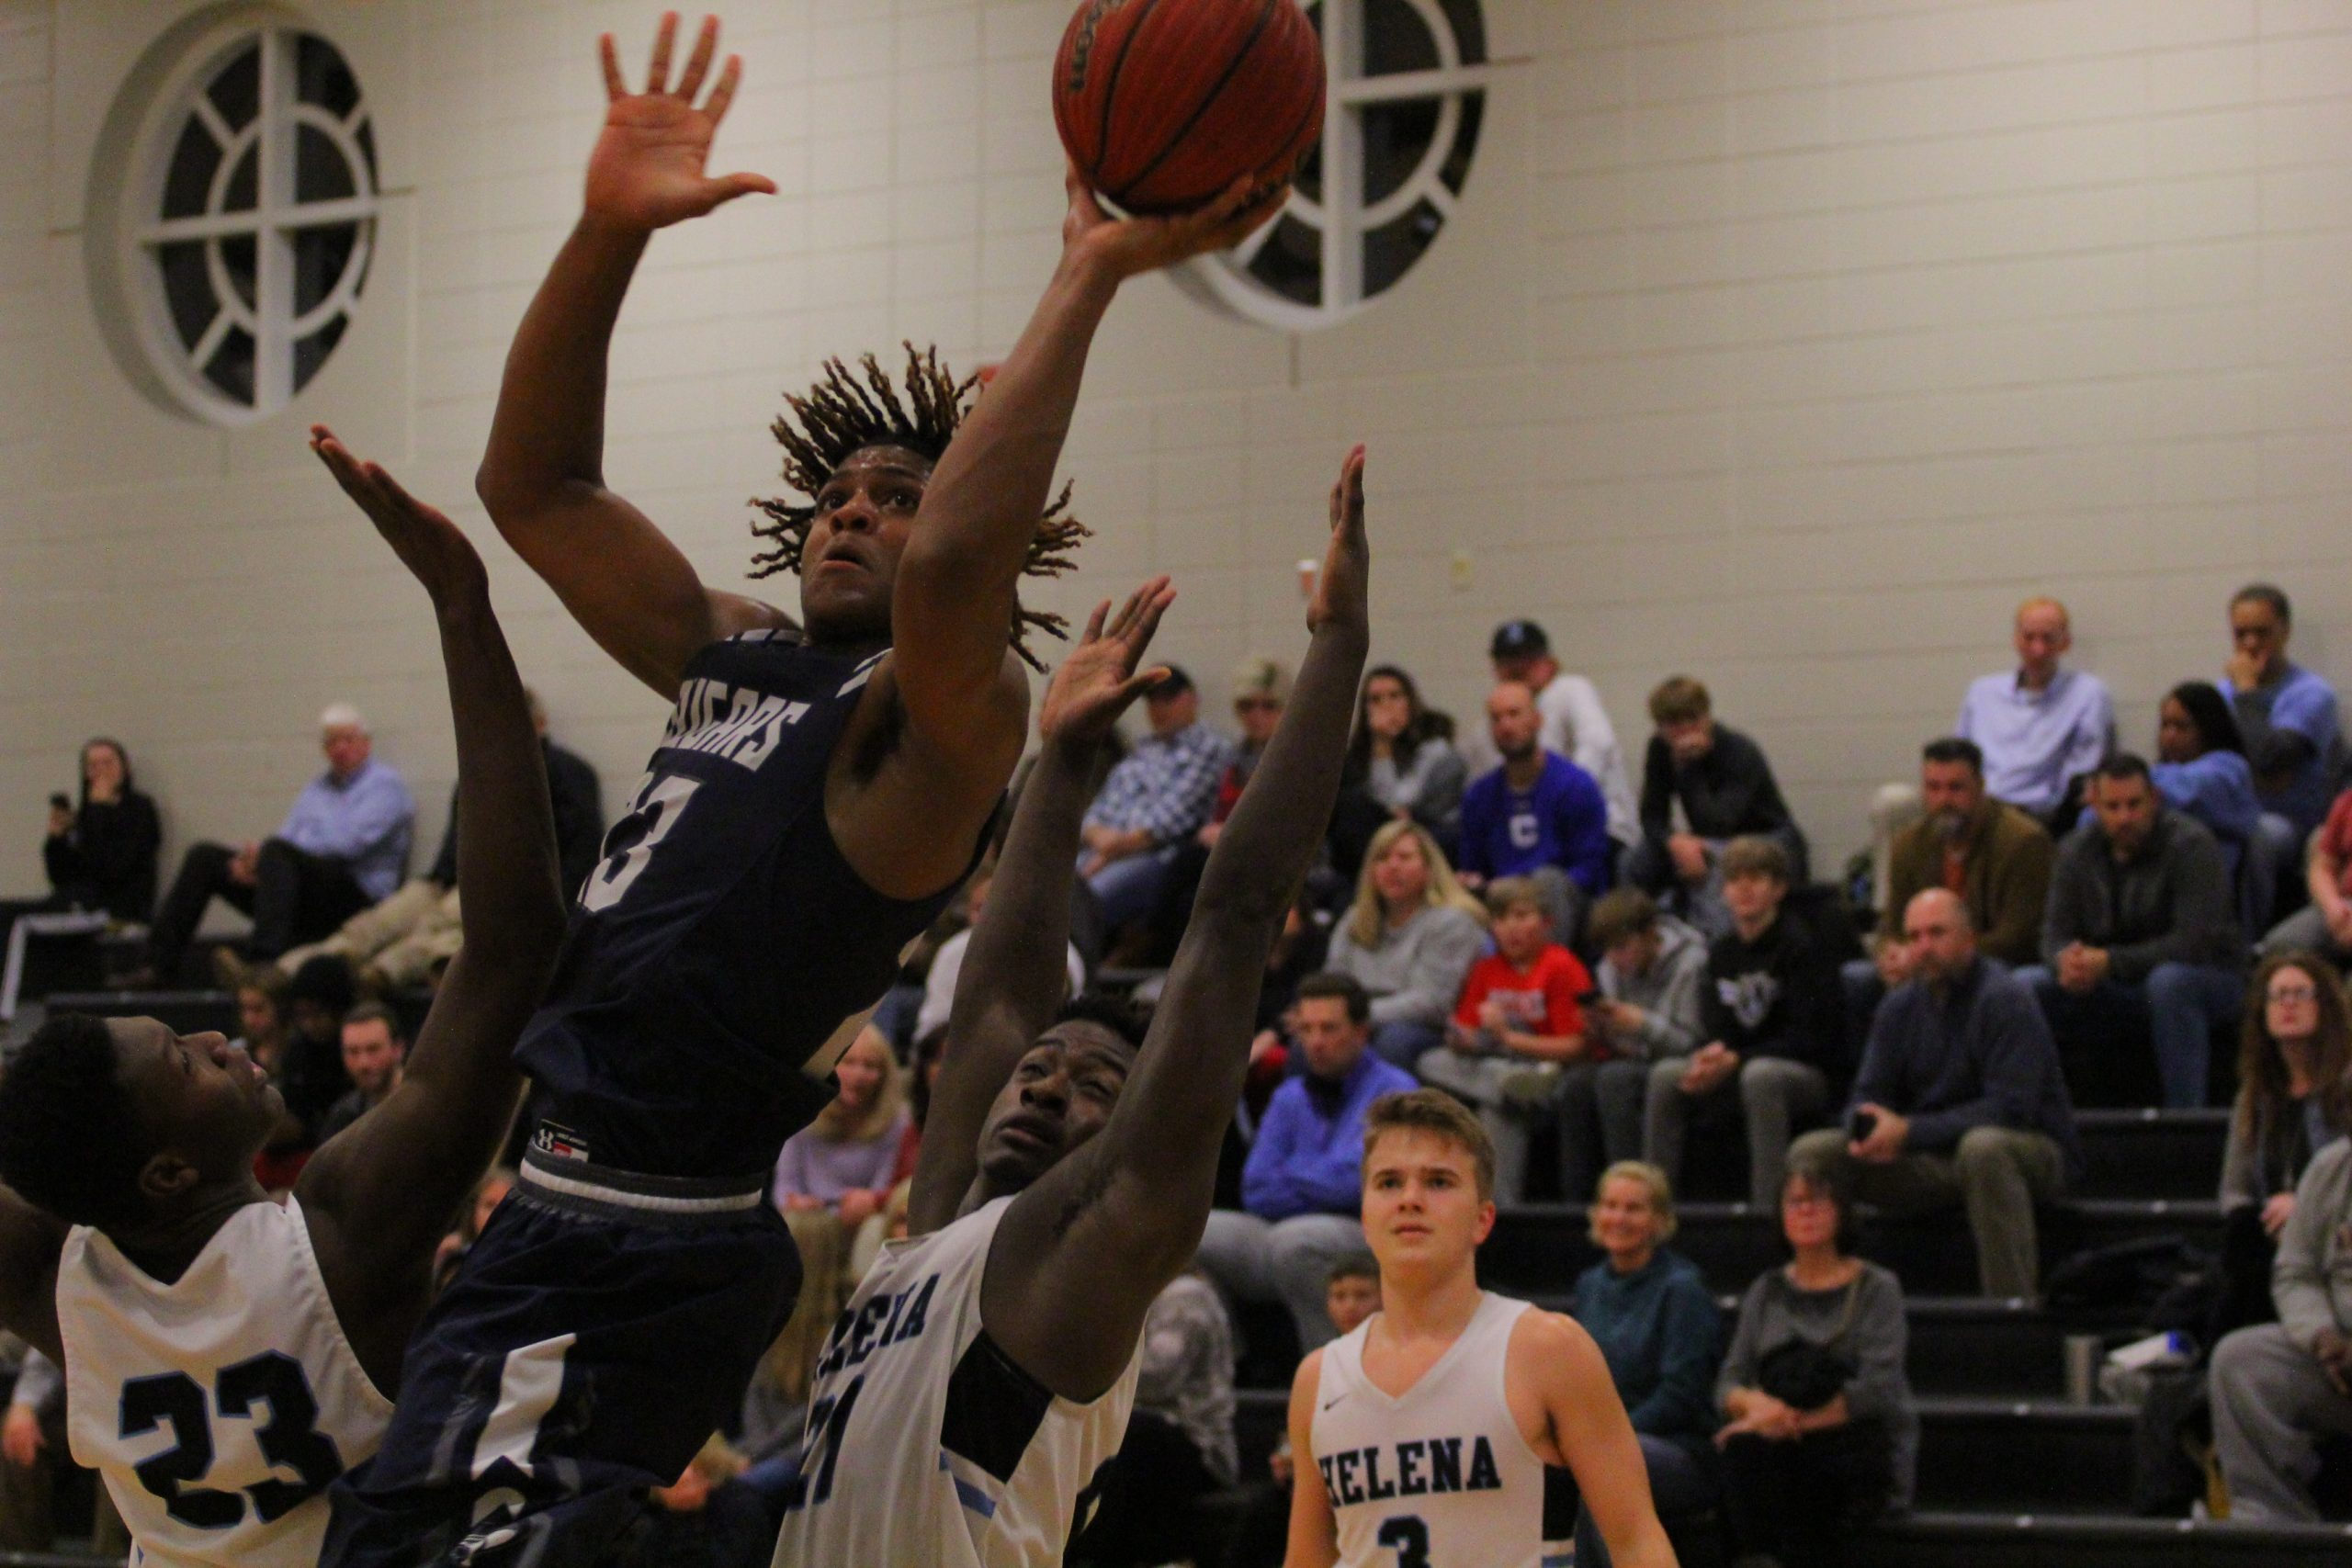 Clay-Chalkville falls to Helena following a nightmarish first quarter